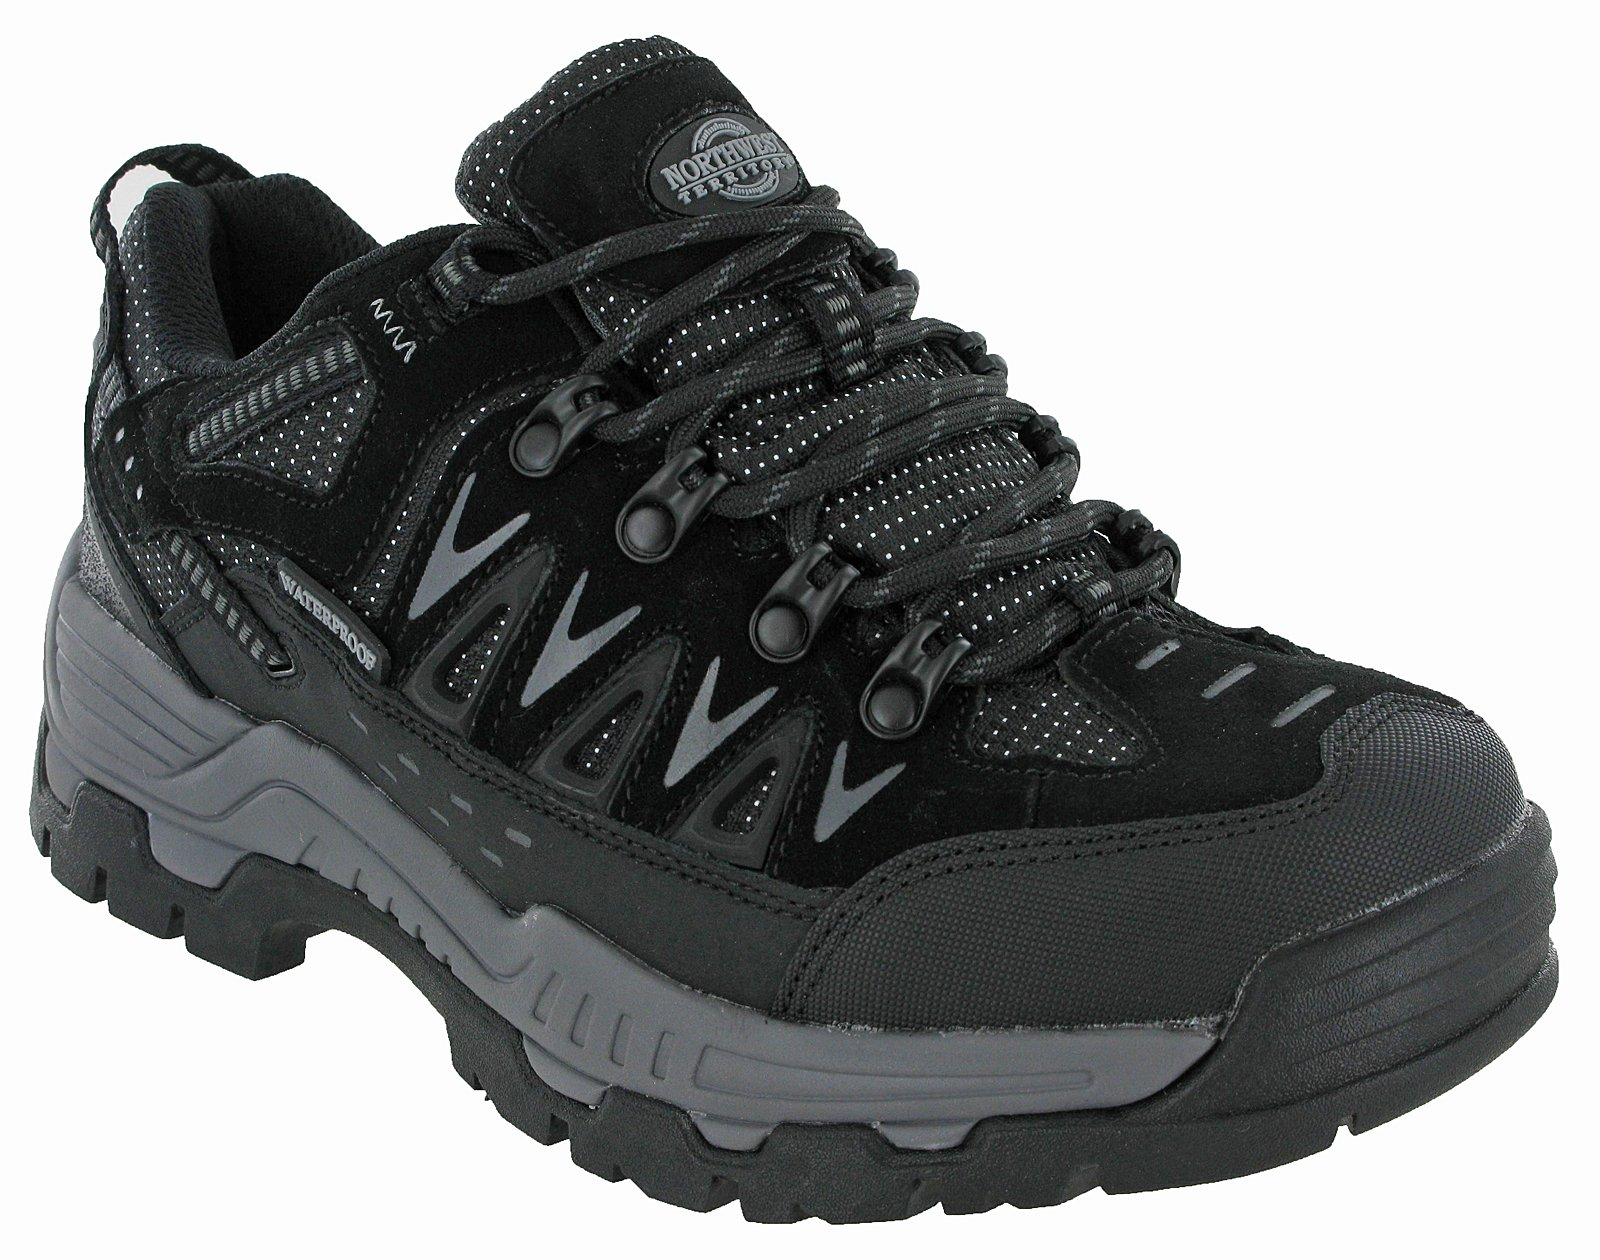 Northwest Waterproof Hiking Shoes Walking Piers Low Cut Trainers 1